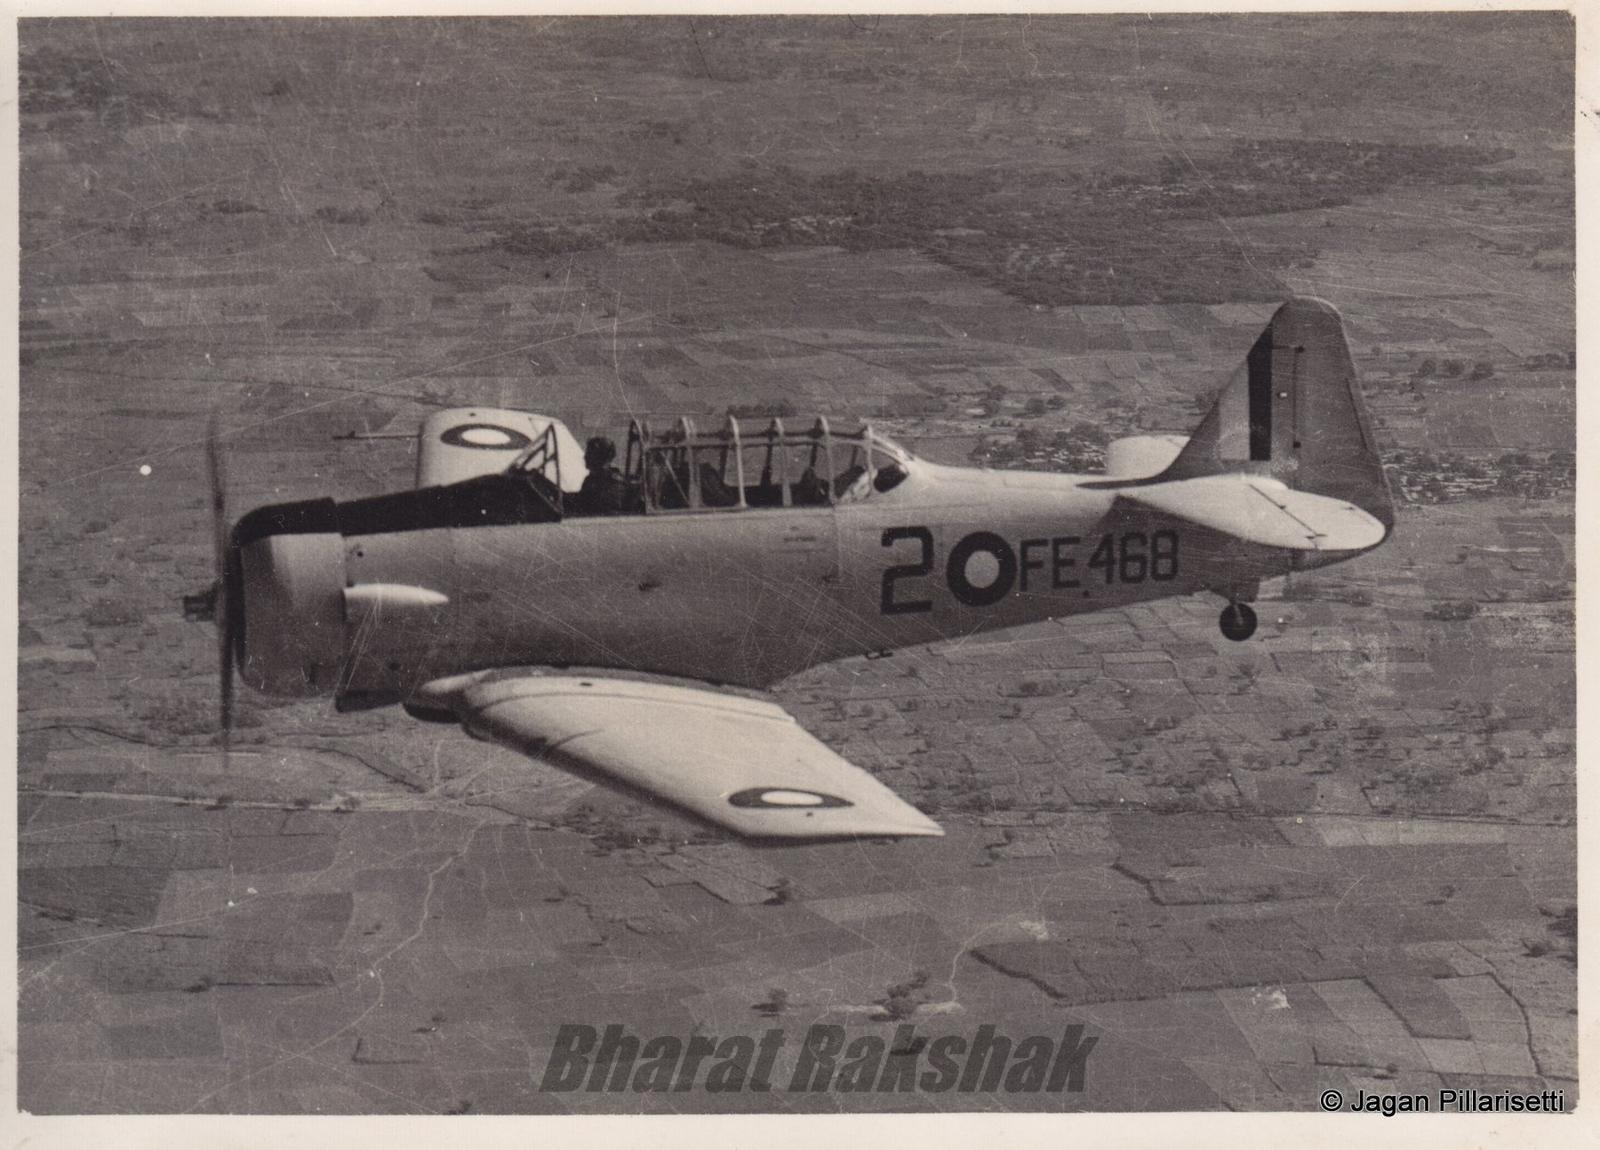 Harvard FE468 of No.1 SFTS (India) , Ambala